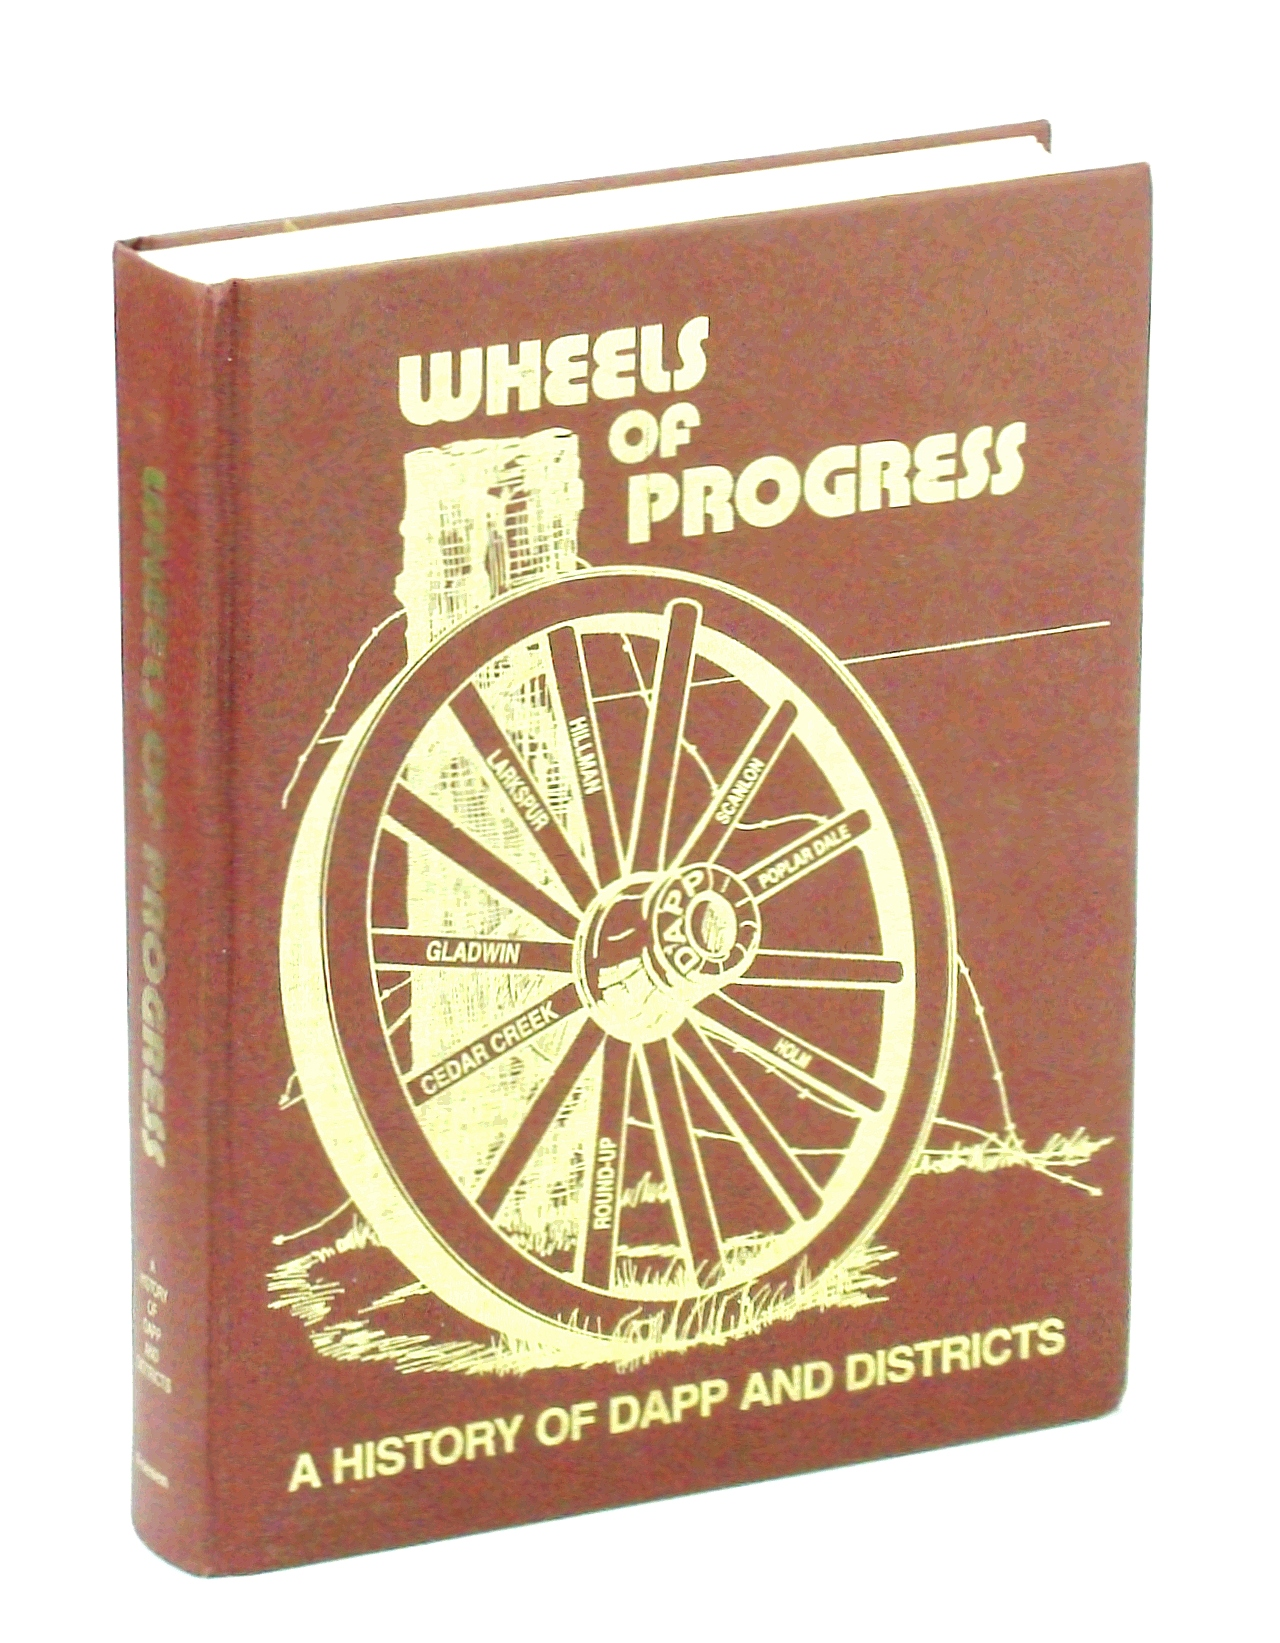 Image for Wheels of Progress. A History of Dapp and Districts. Cedar Creek, Gladwin, Larkspur, Hillman, Scanlon, Poplar Dale, Holm, Round-Up.